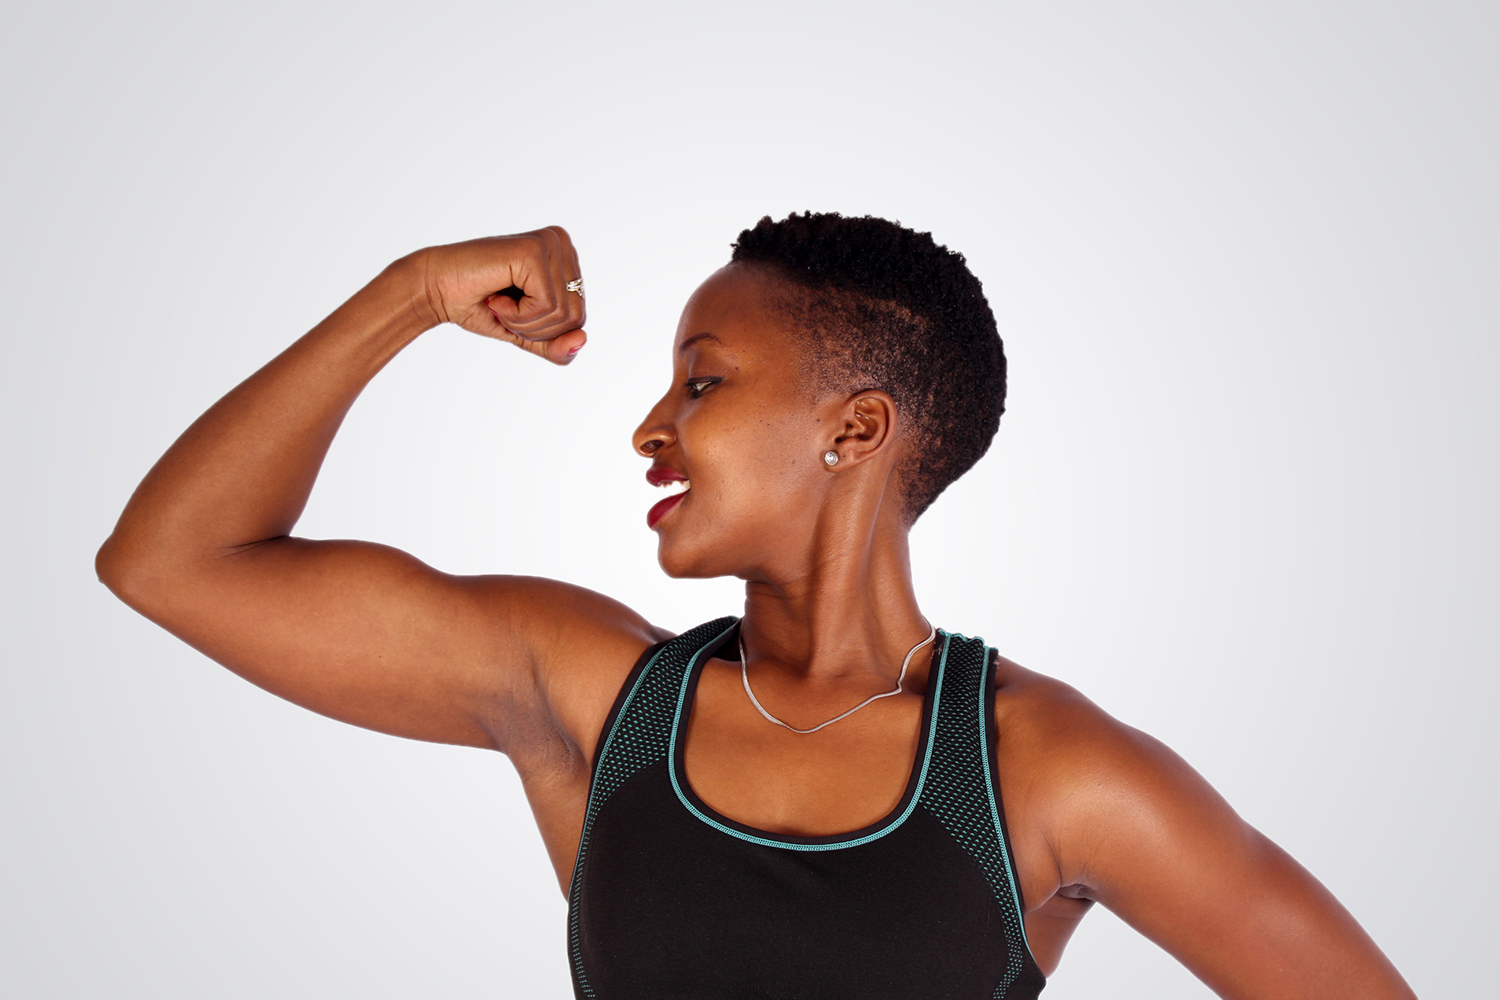 Female Trainer Flexing Biceps Muscles